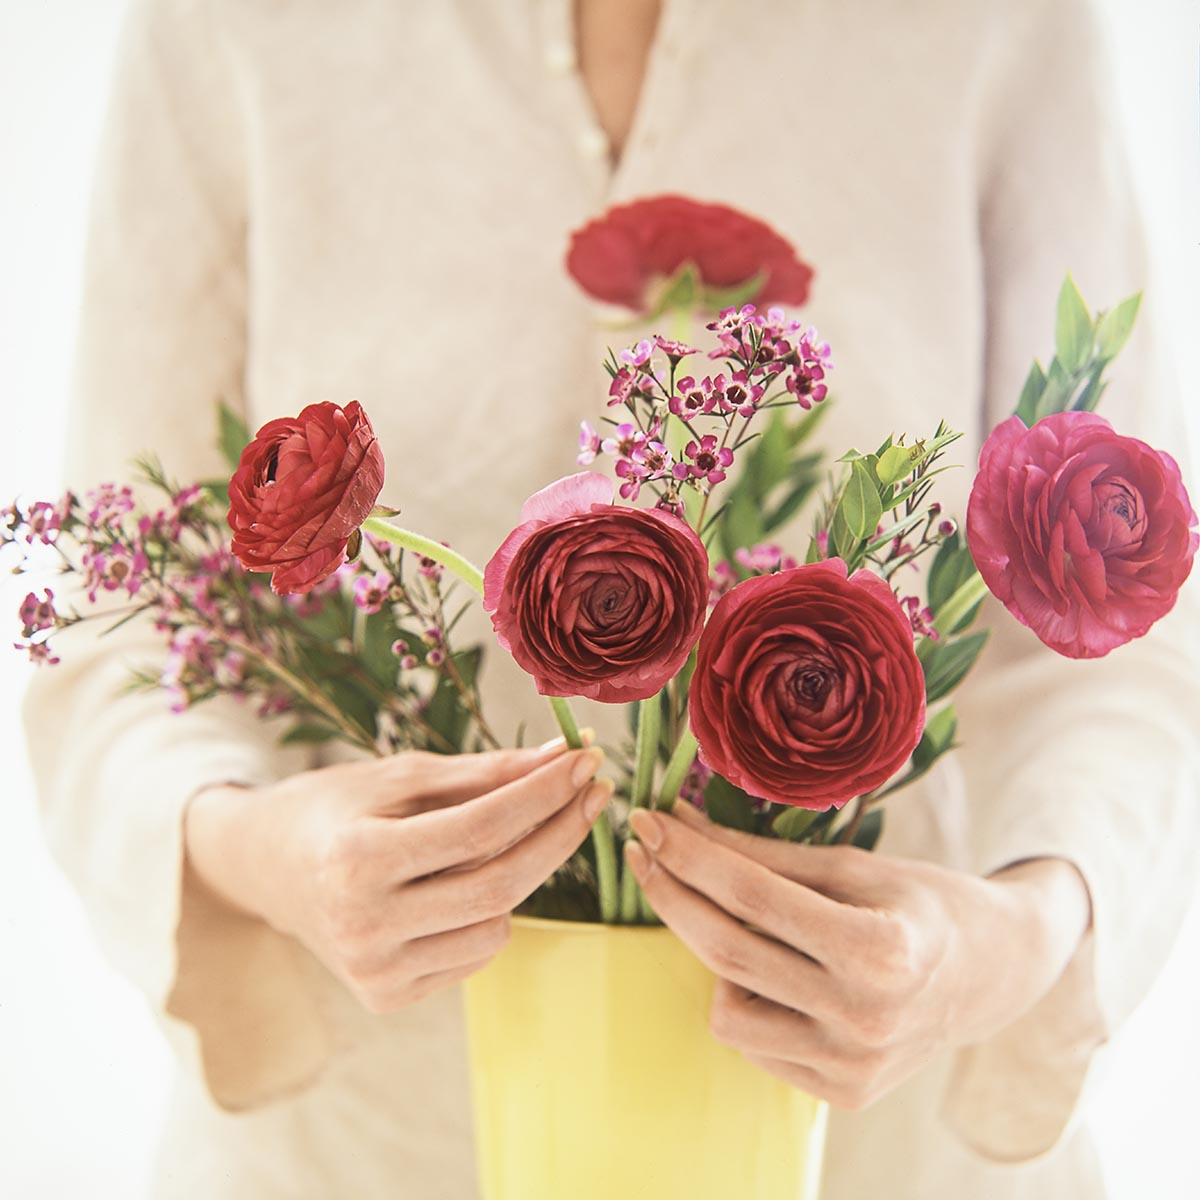 Free stock photo Woman's hands arranging flowers in a vase